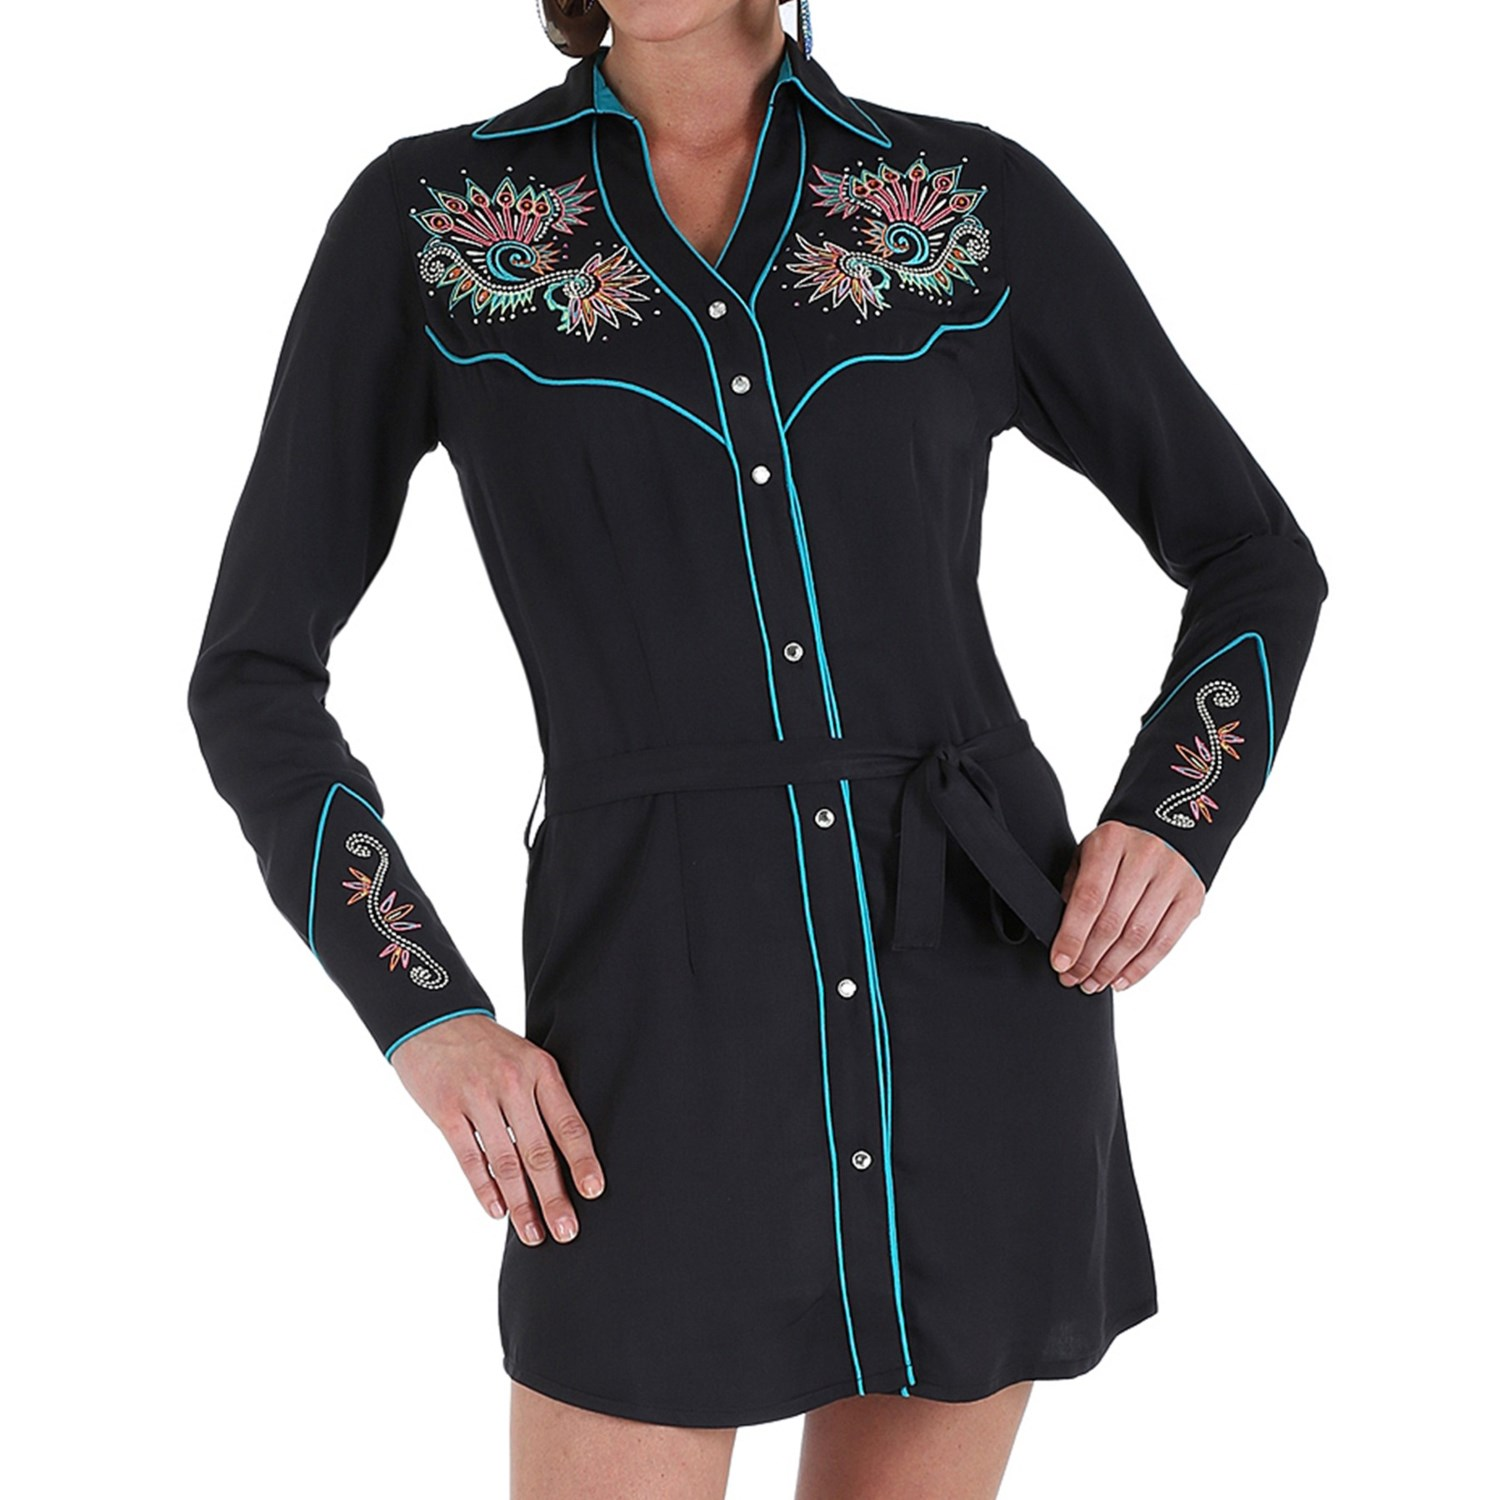 Wrangler embroidered shirt dress for women 8660k save 52 Women s long sleeve shirt dress